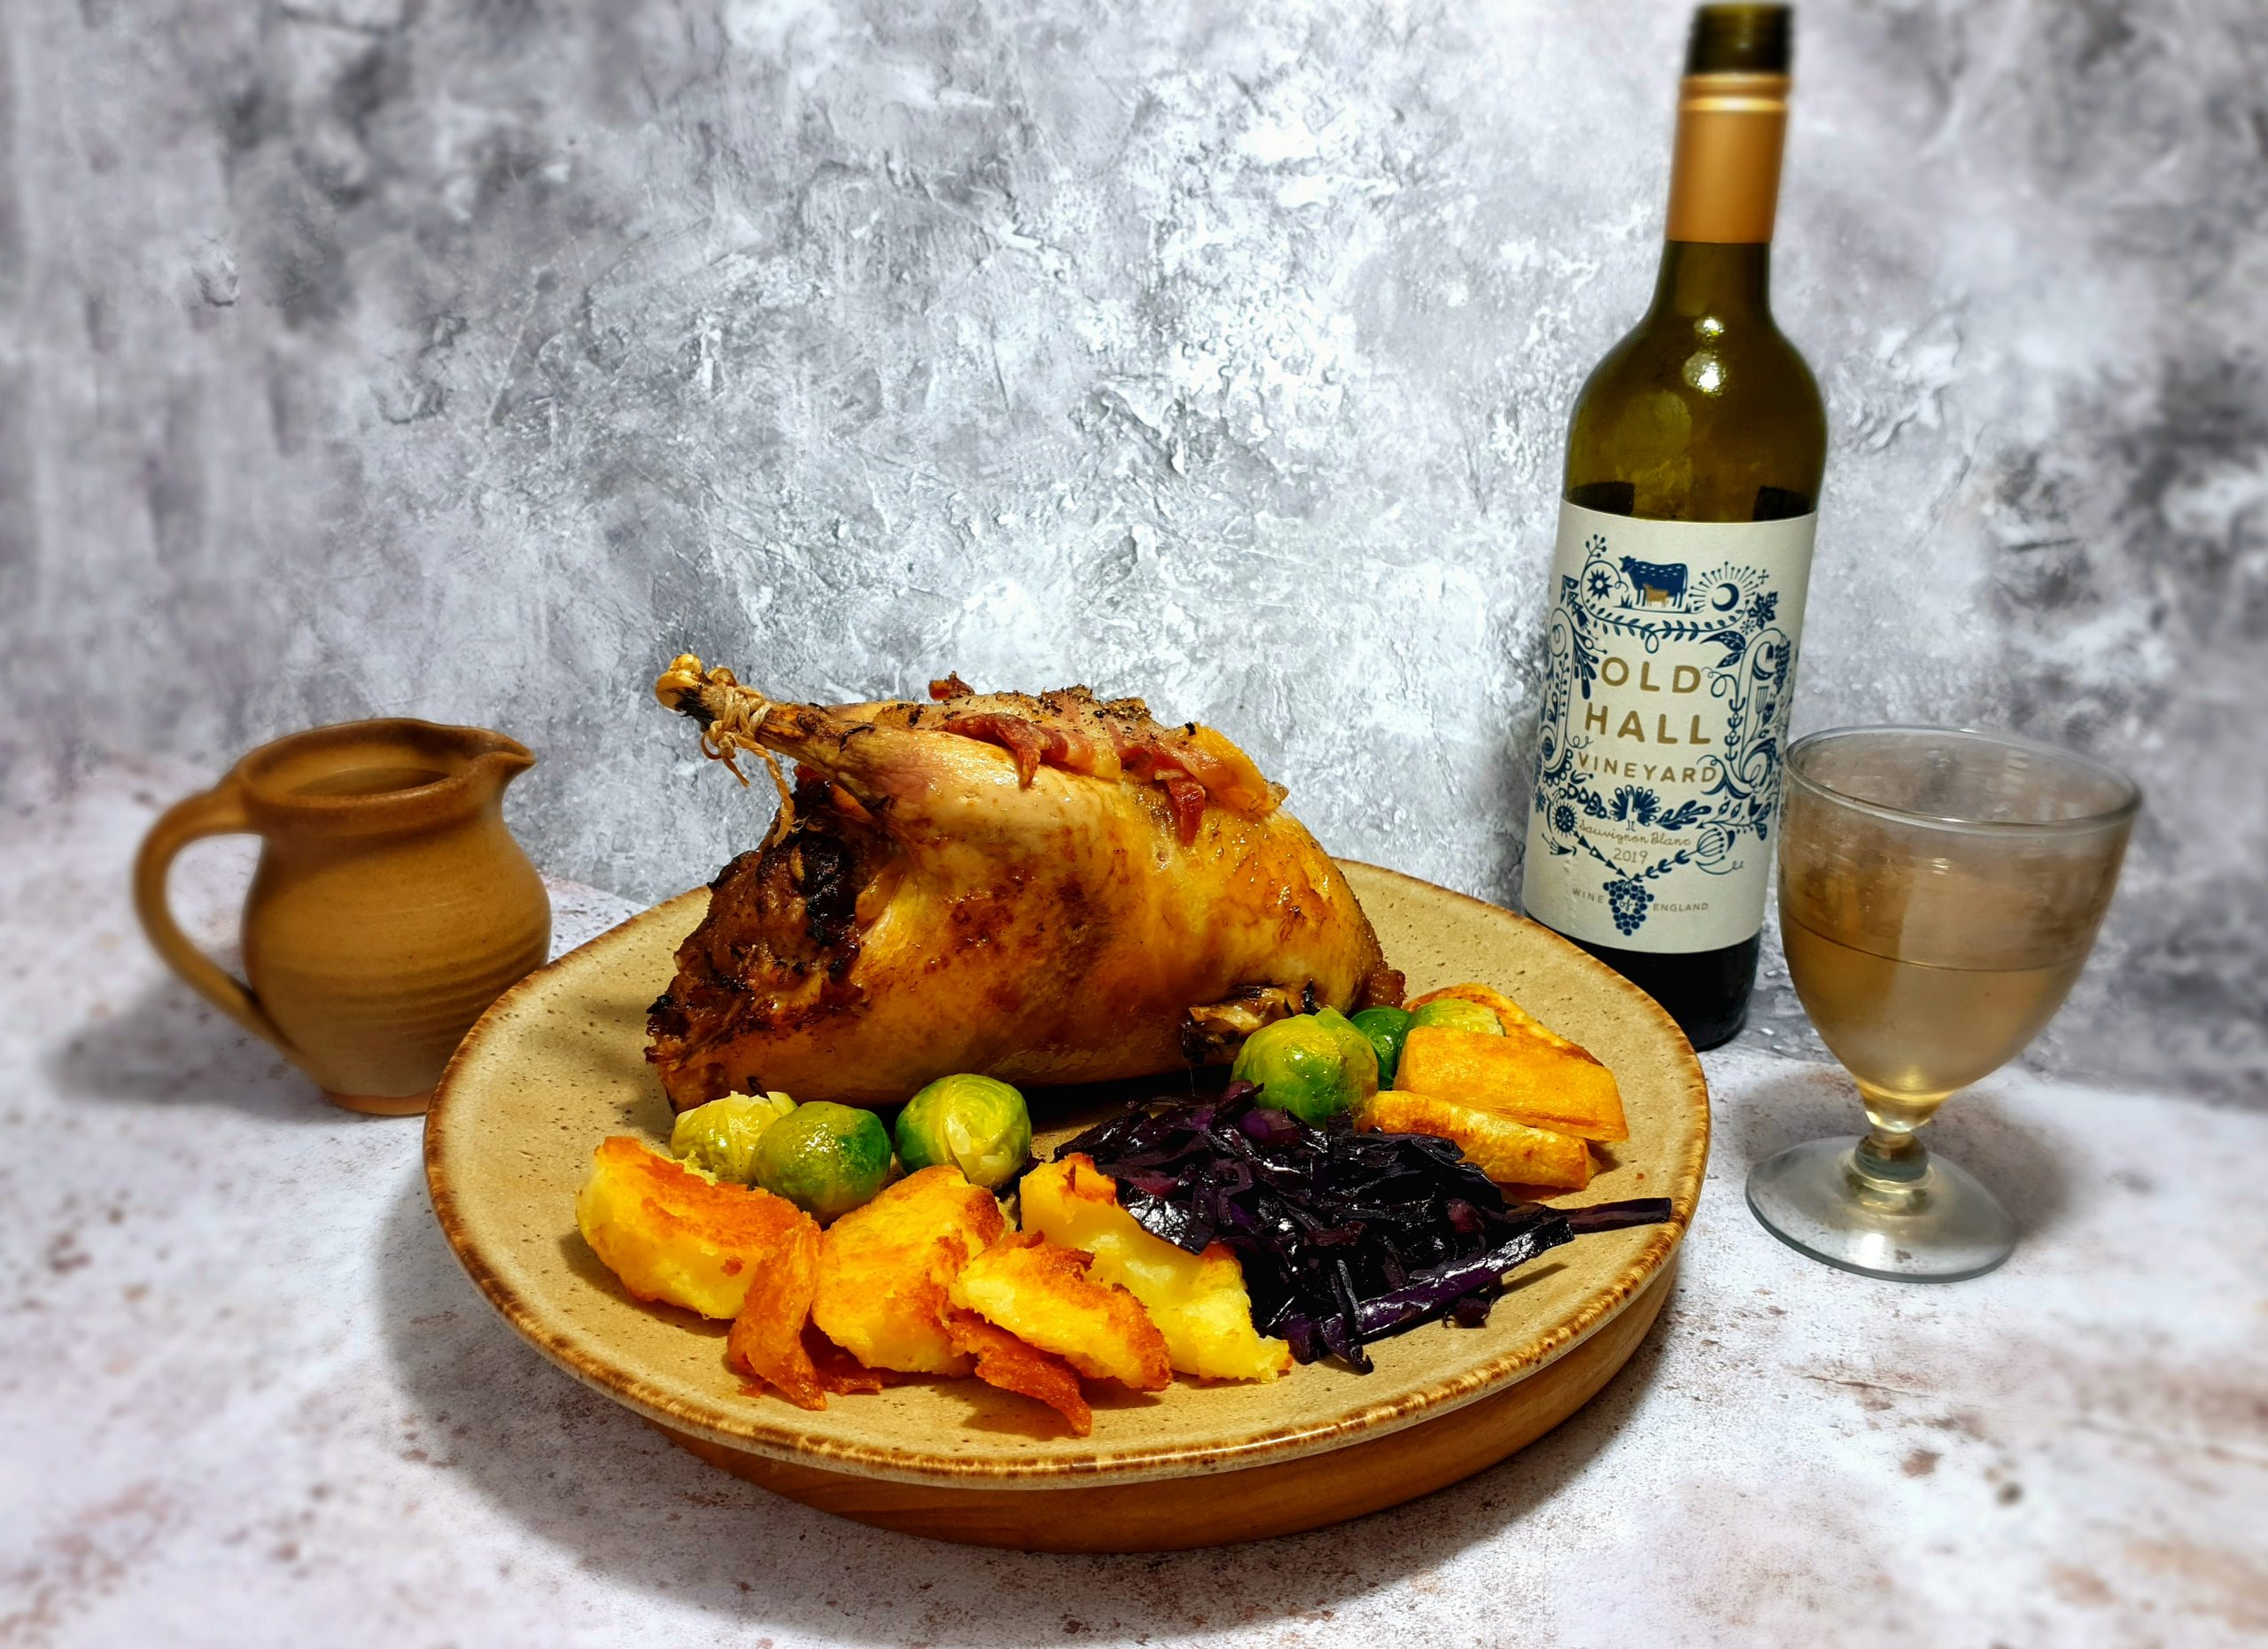 Roast pheasant with wine